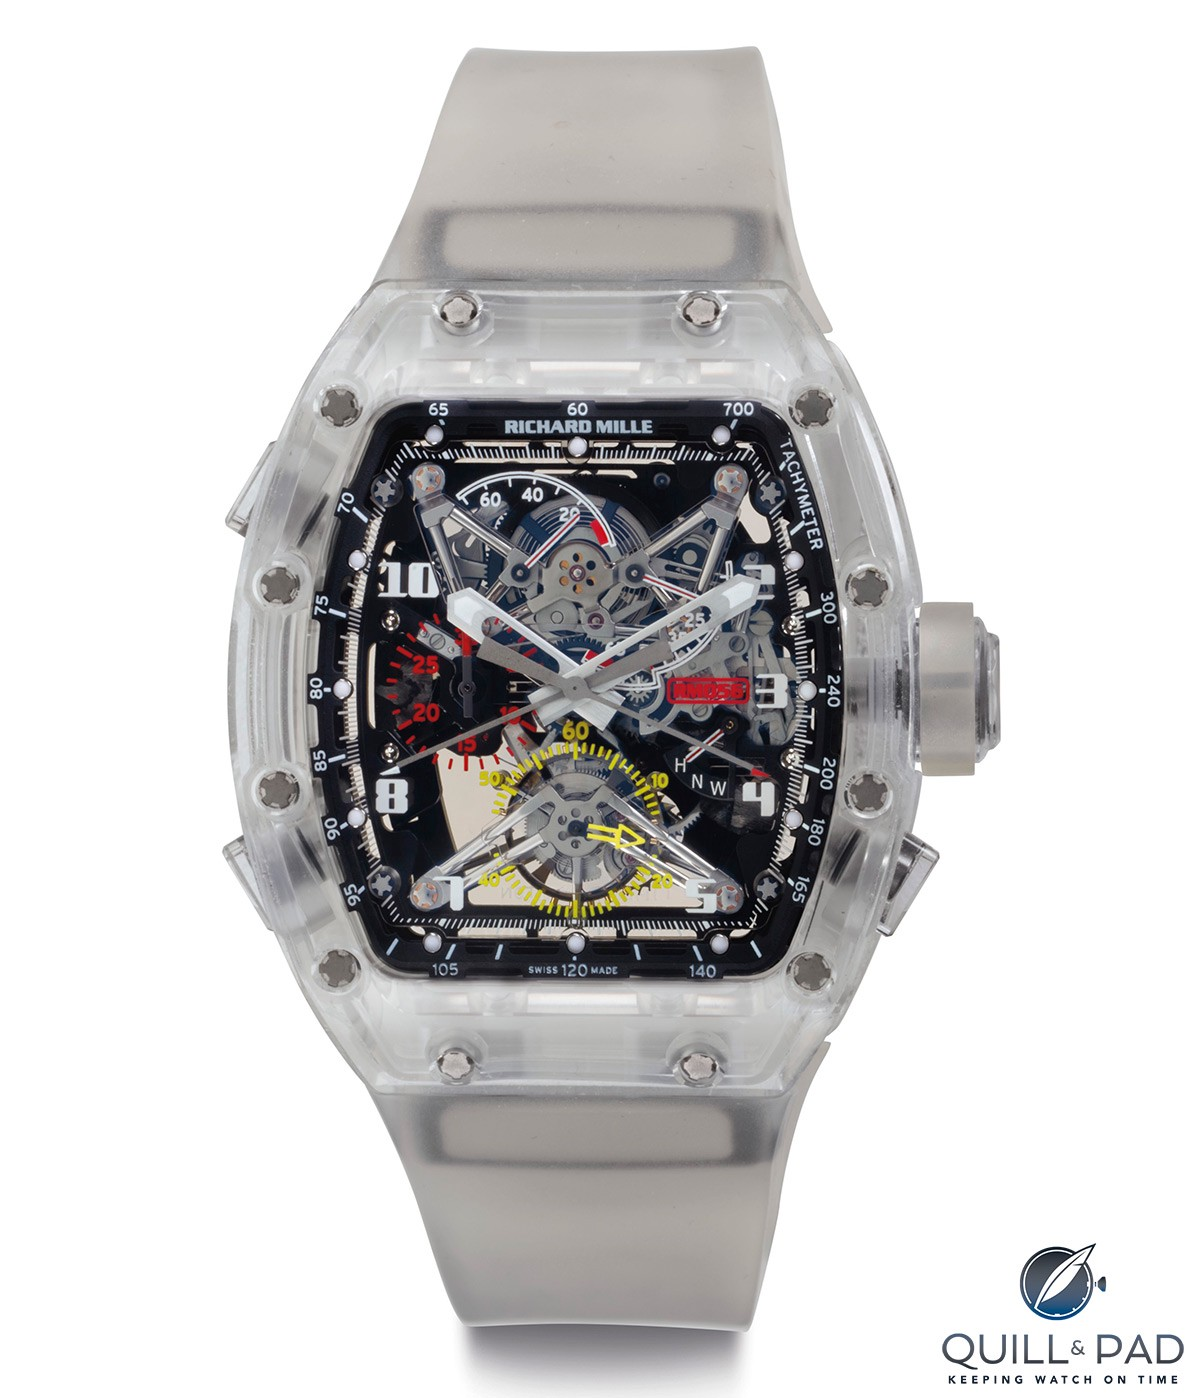 Christies lot 228: Richard Mille RM 056 Prototype No. 2